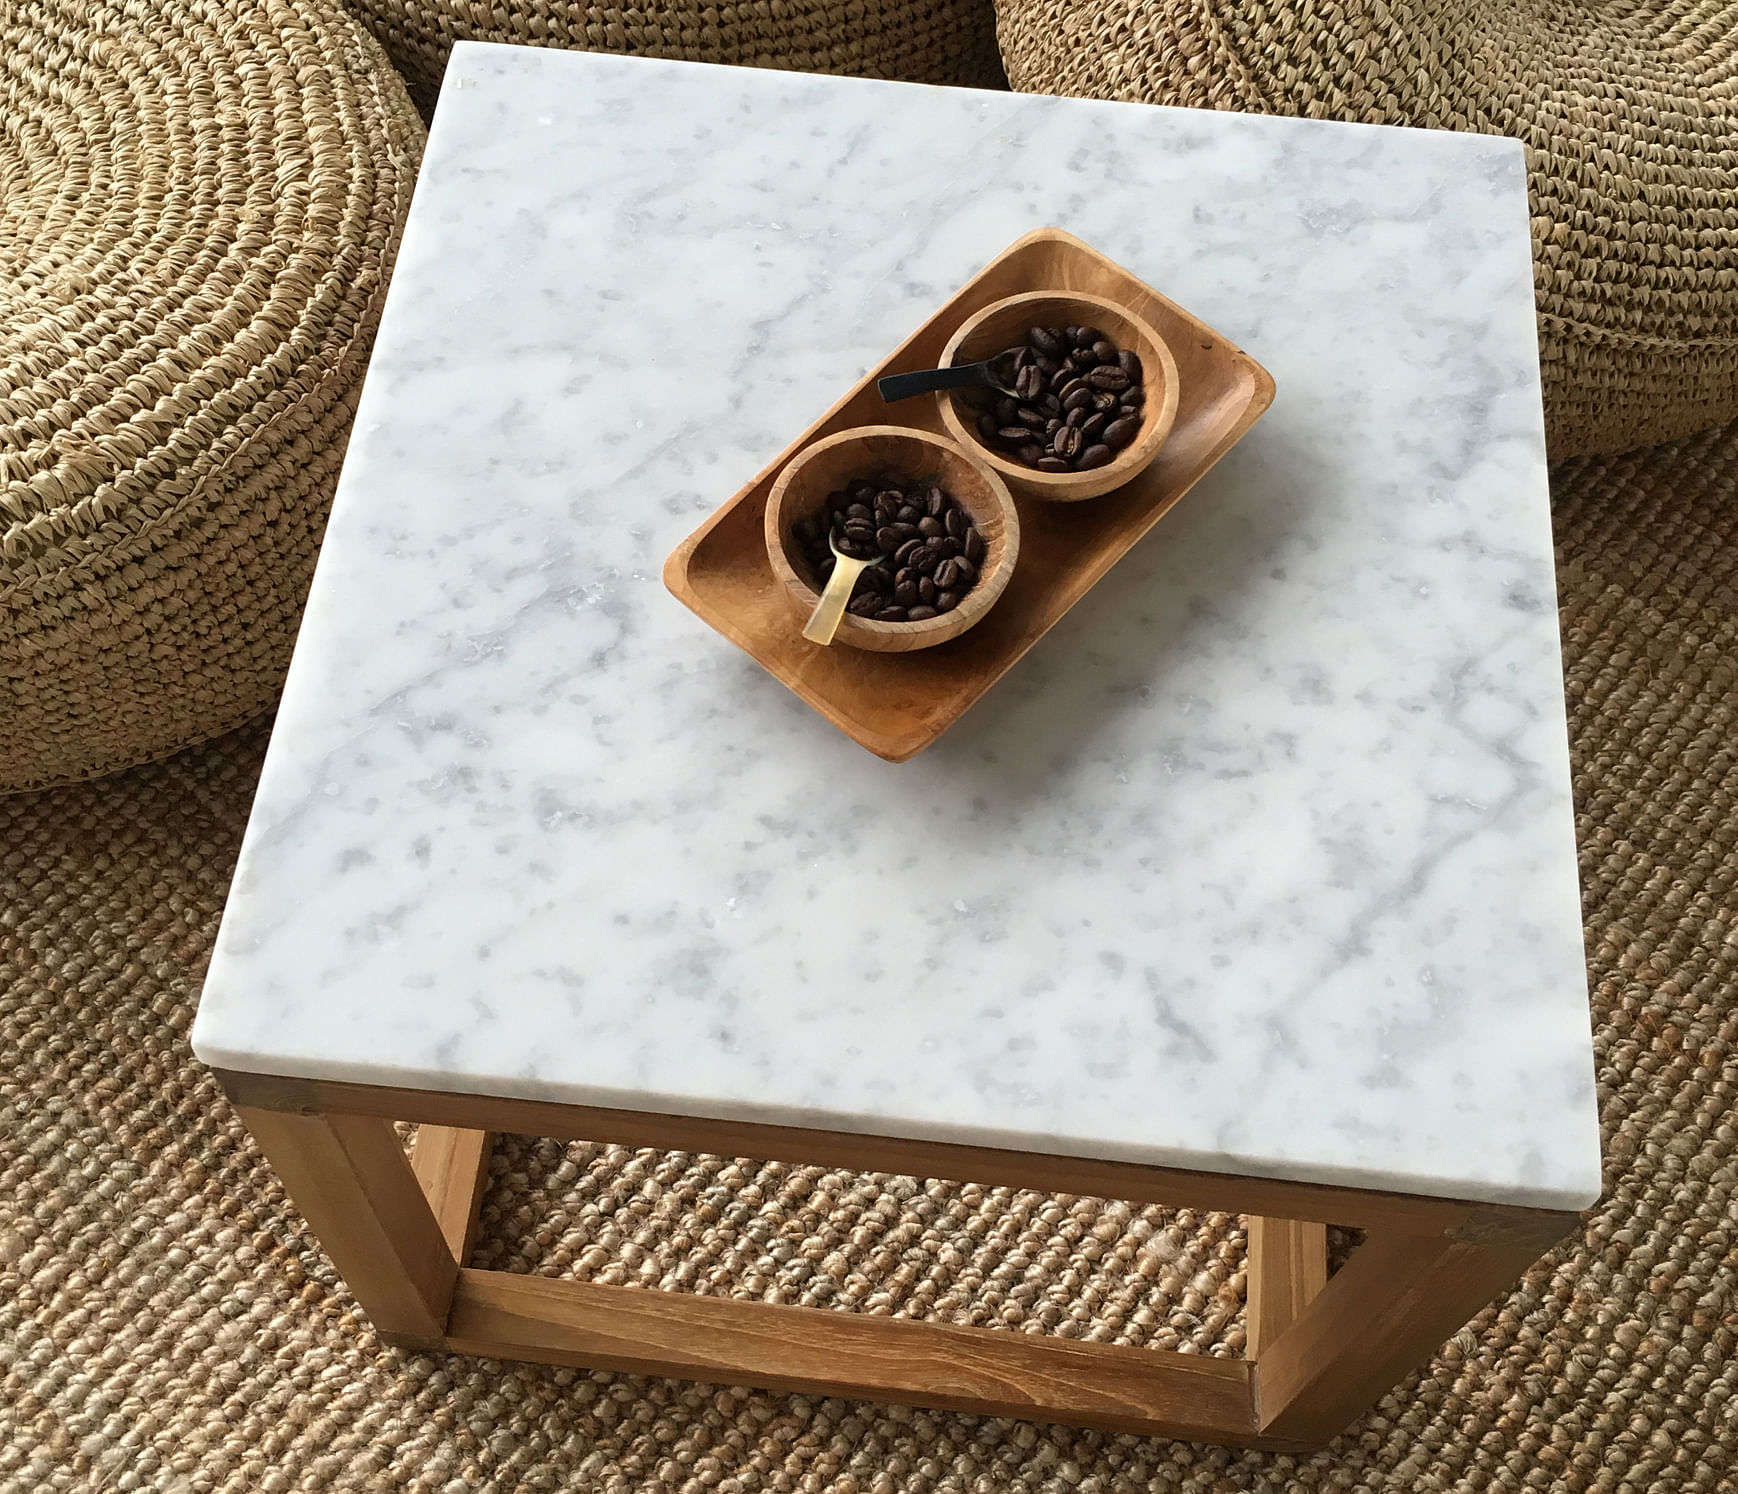 Shopping New Store Selling Wood And Marble Furniture Home